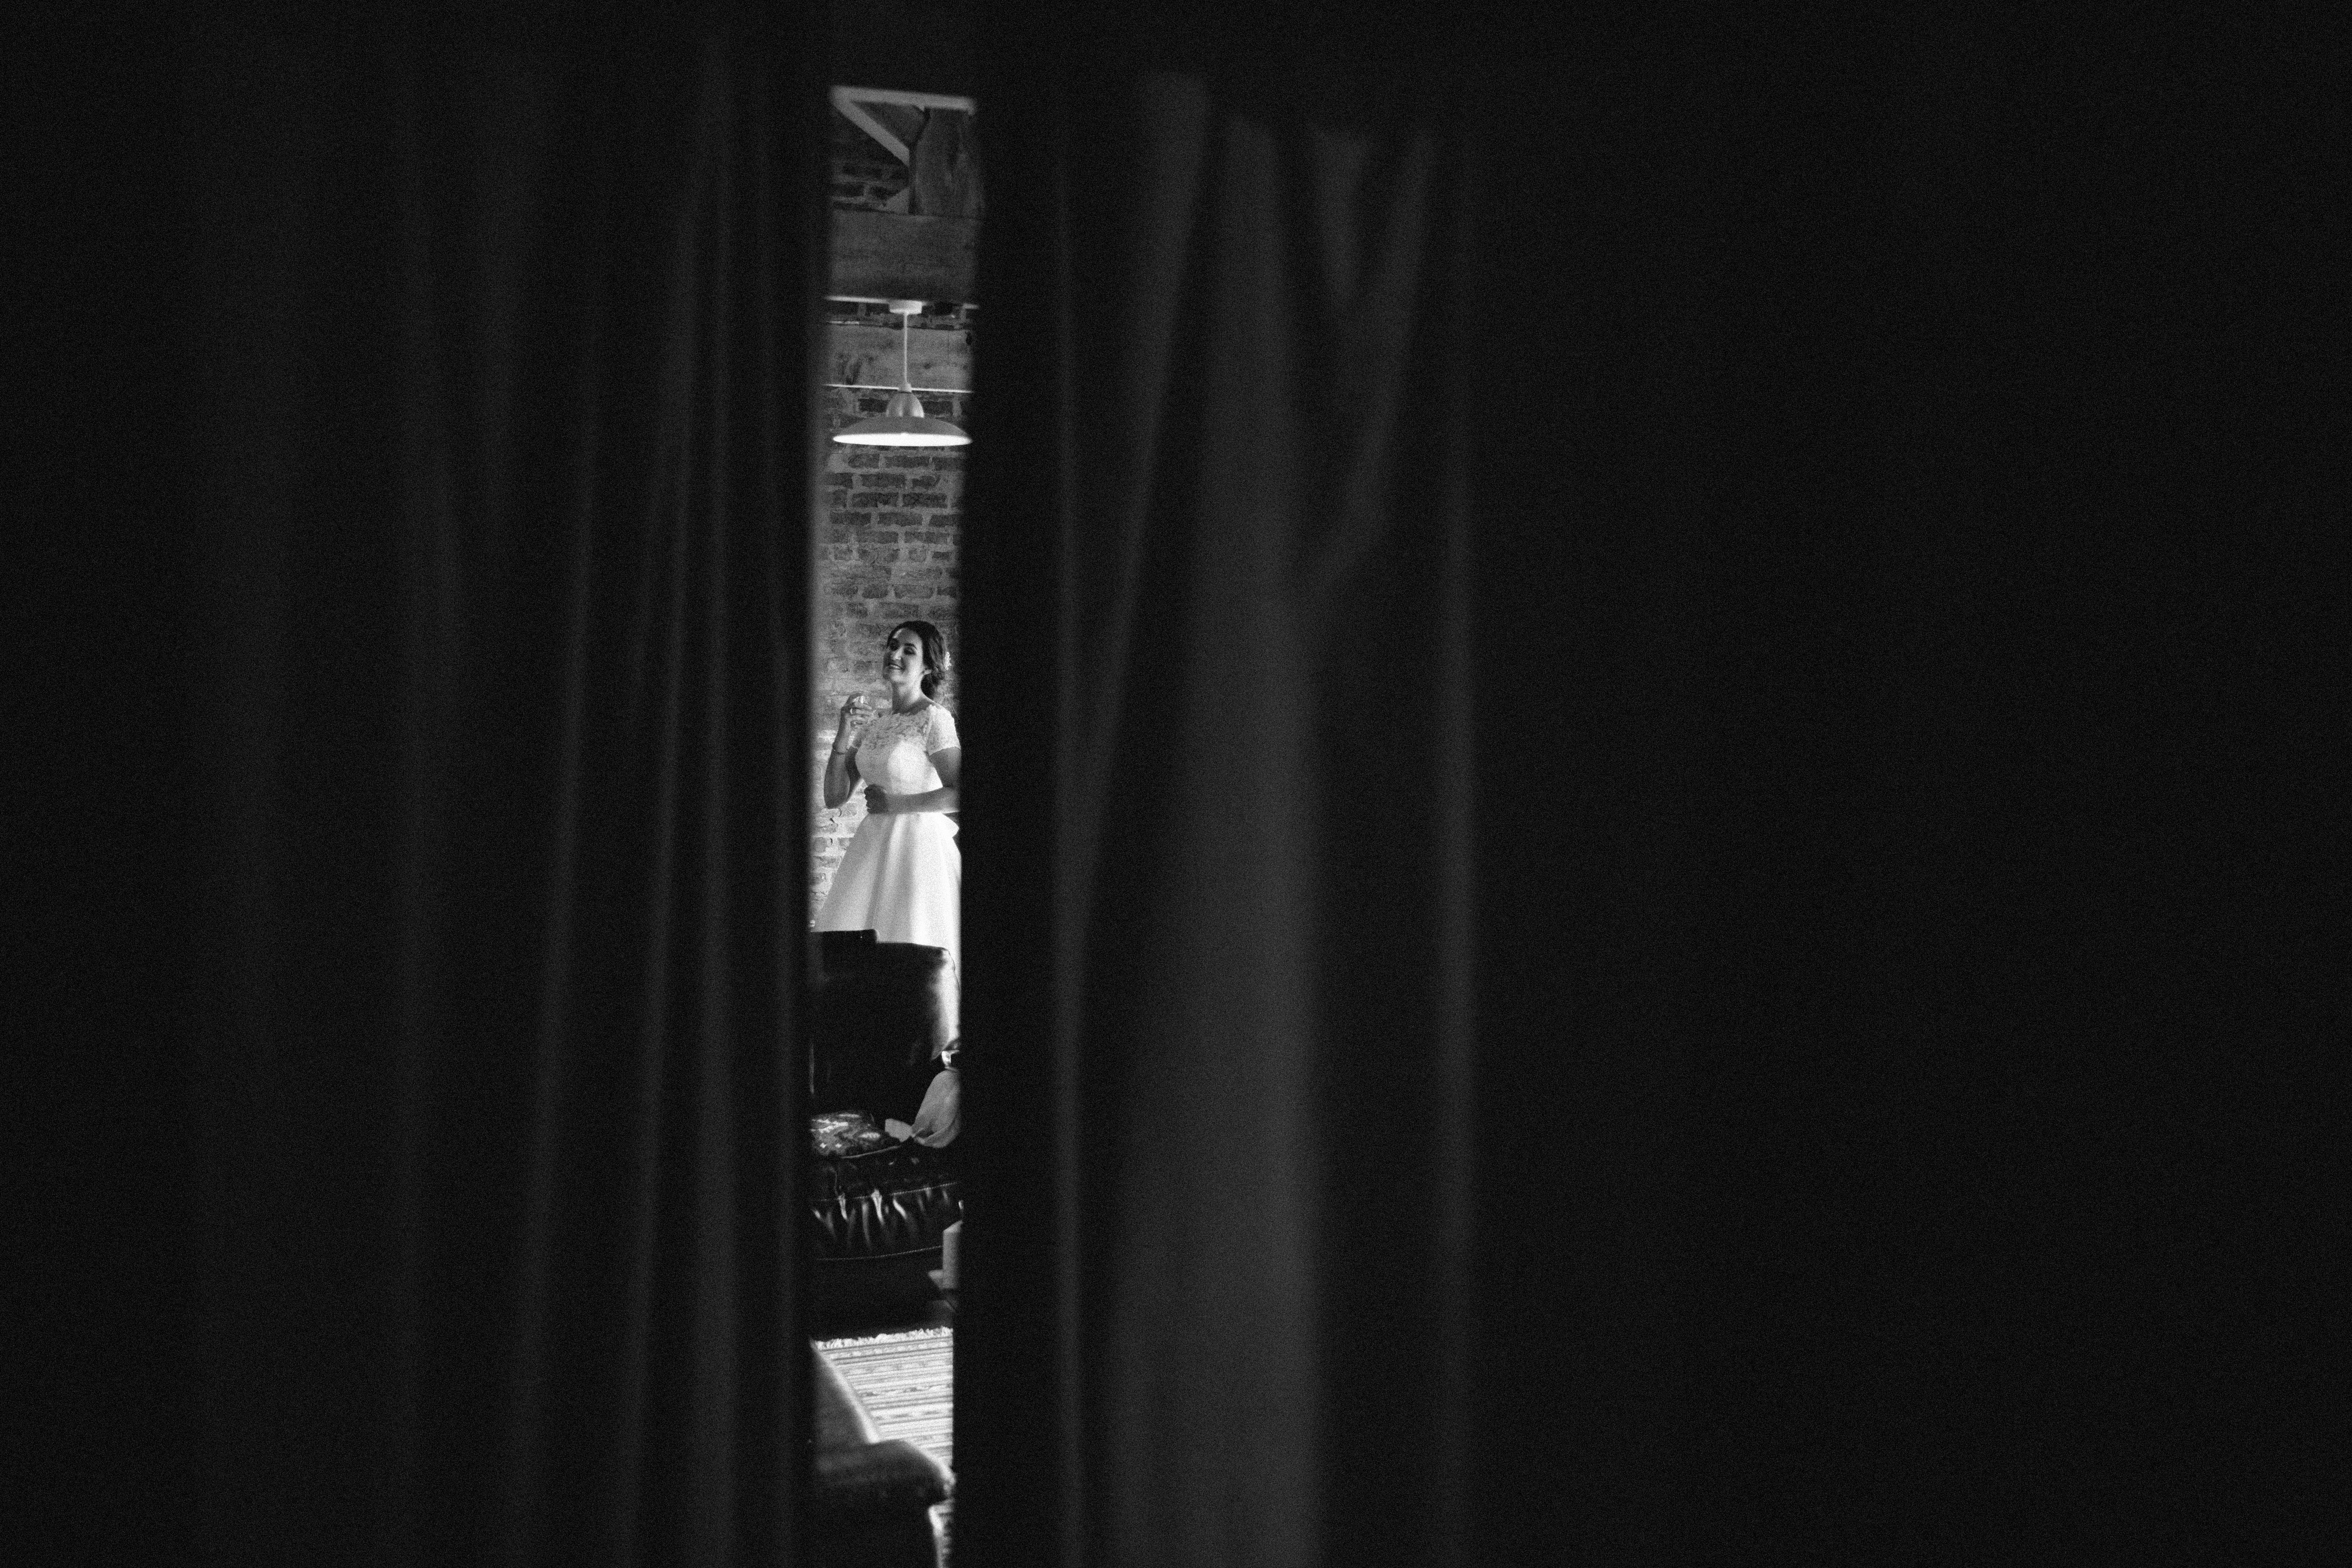 Katy & Tom Wedding Dale Farm, Yorkshire Wedding Photography by Barry Forshaw-0128.jpg